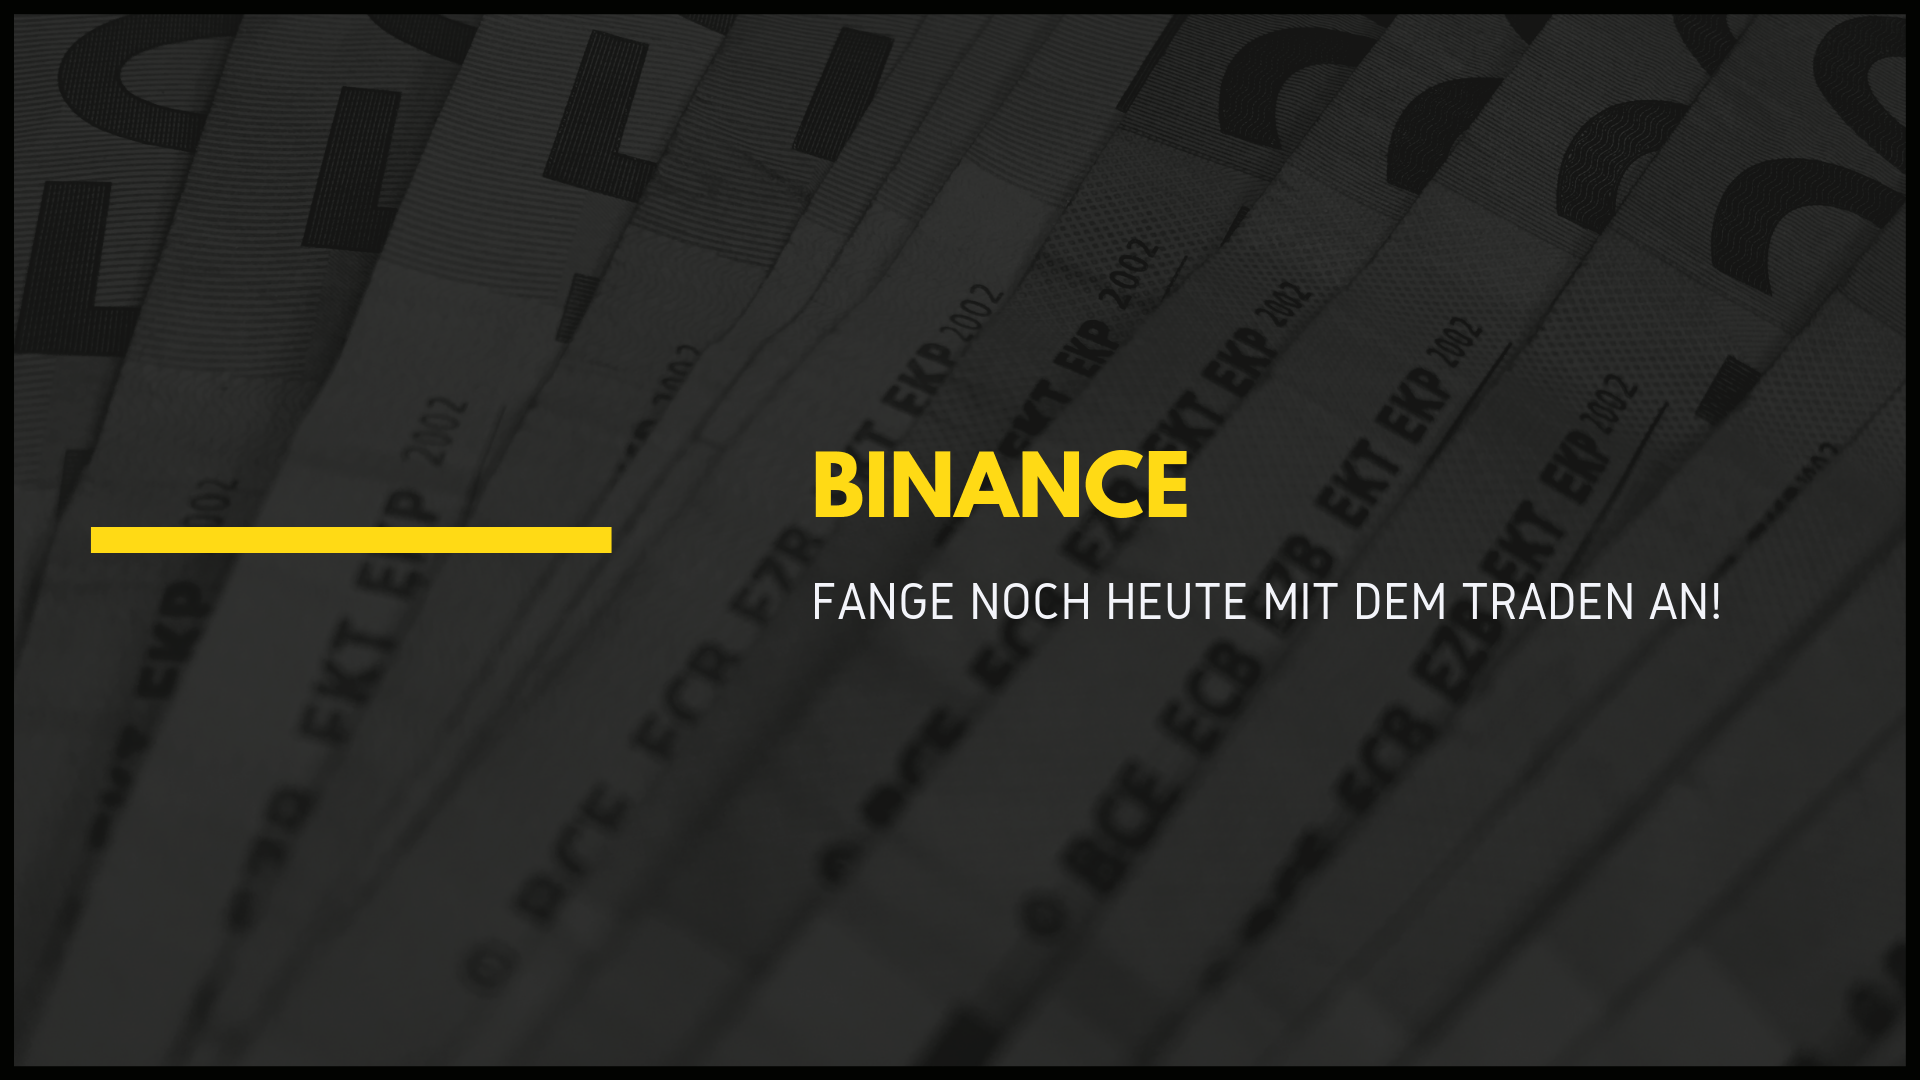 Binance Nice picture